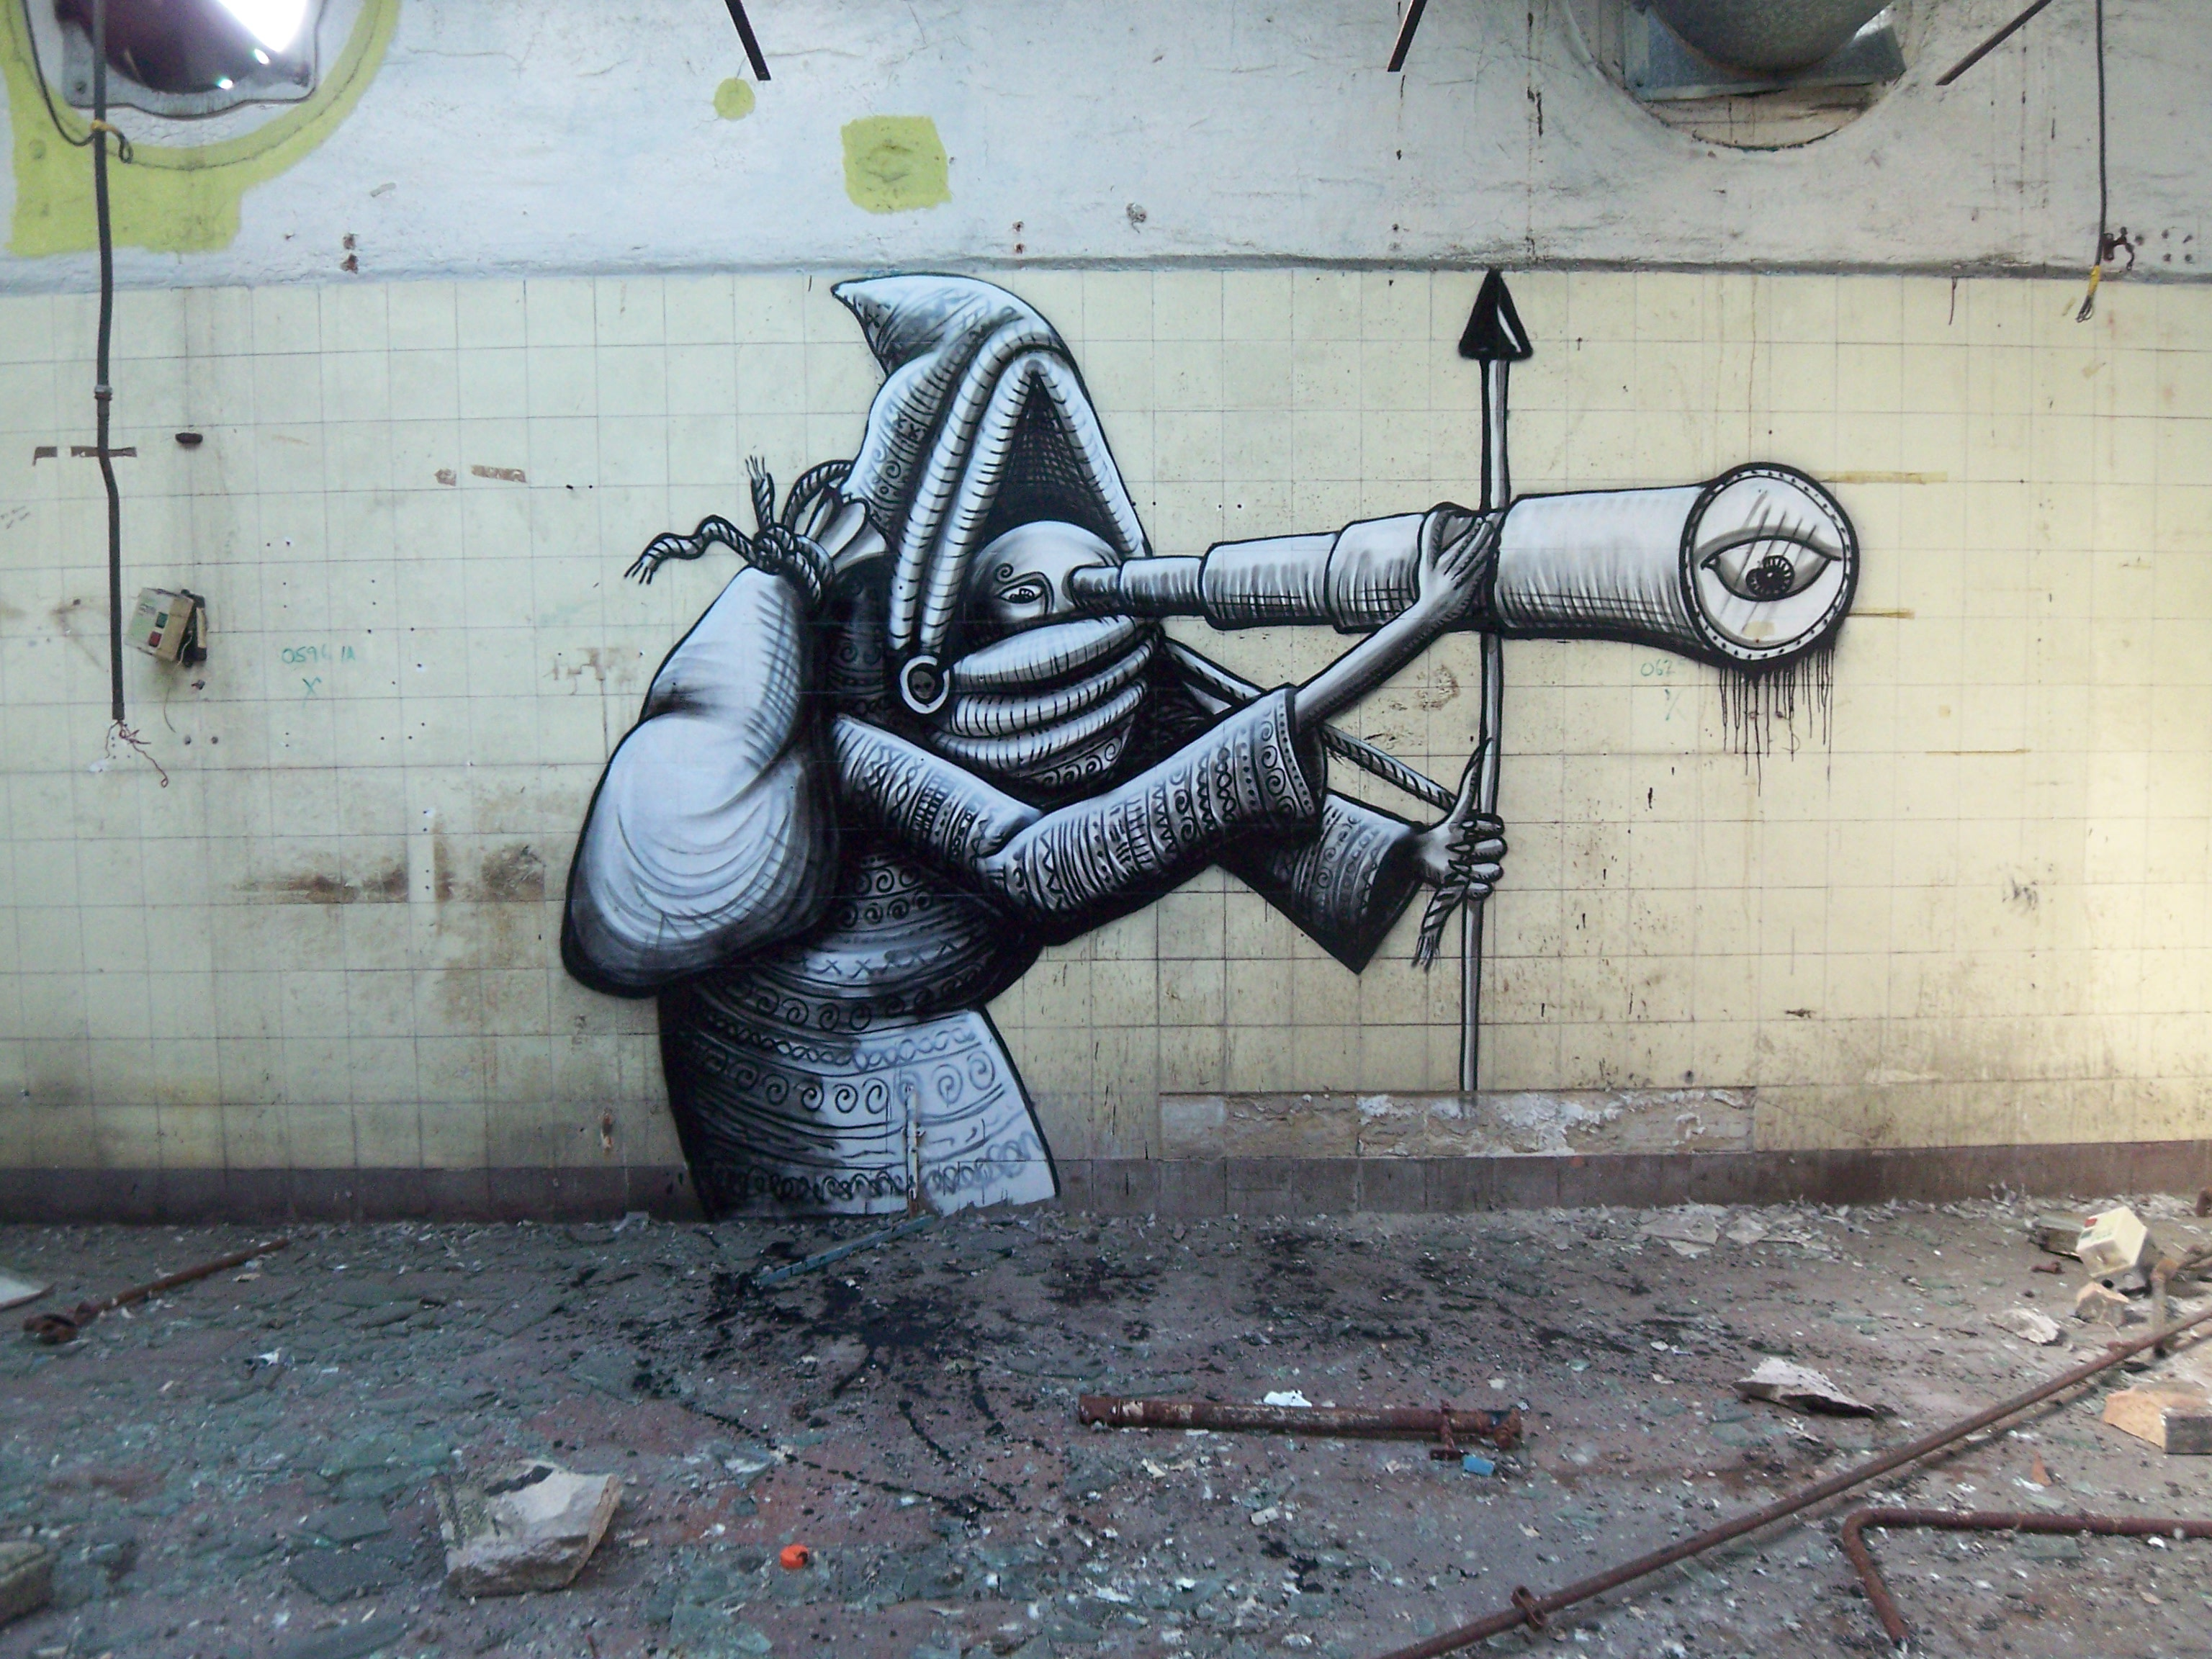 Sheffield United Kingdom  City pictures : Characters By Phlegm Sheffield United Kingdom Street art and ...